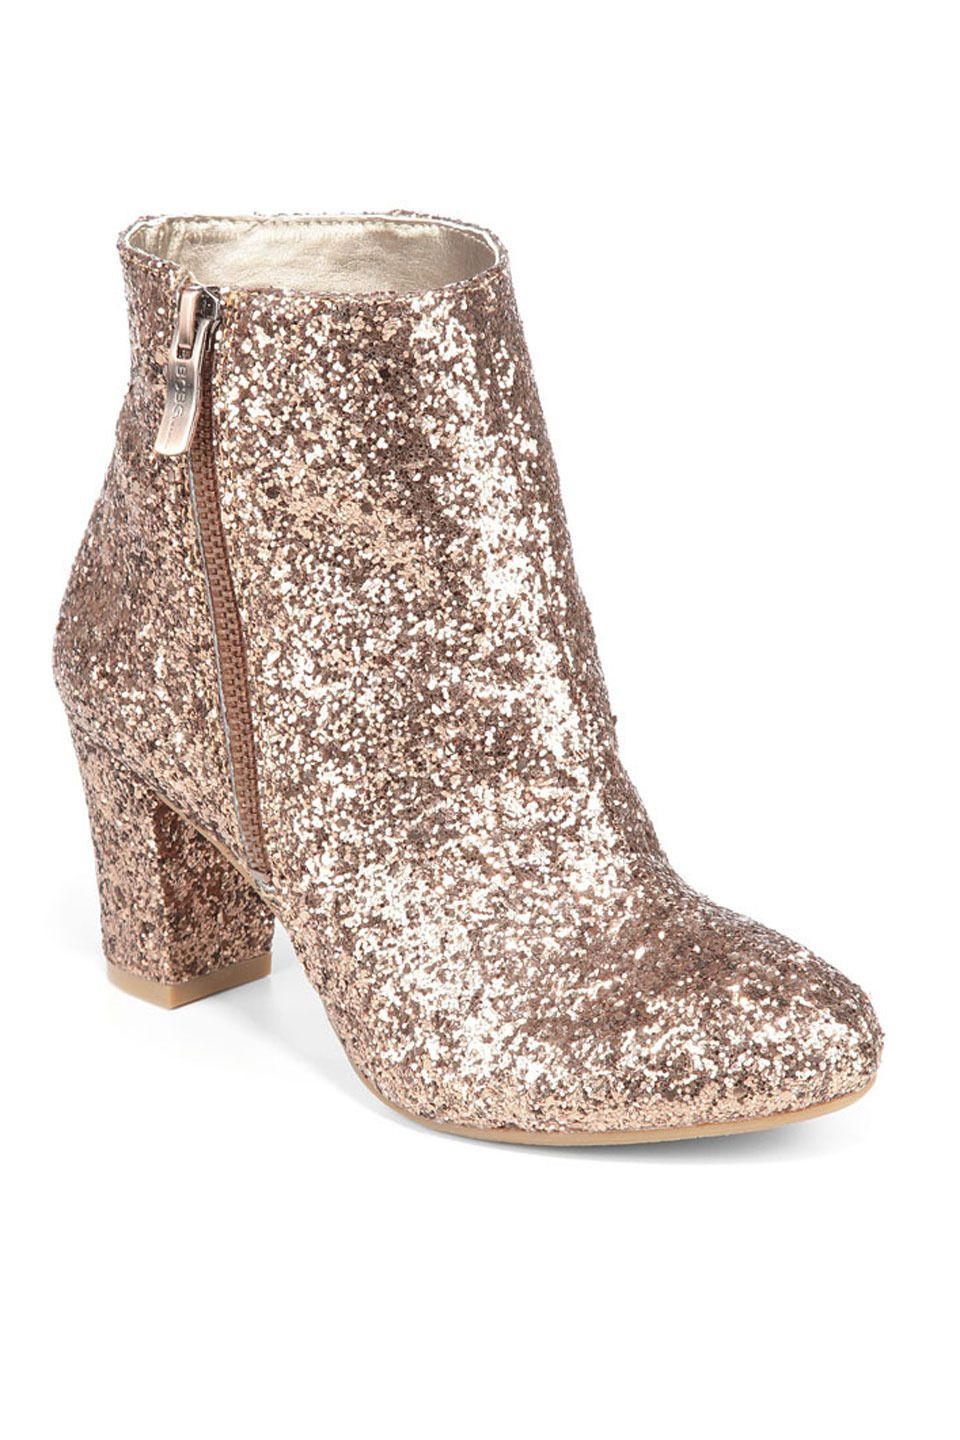 0388fe8d3e36 BCBGeneration Charm Boots In Bronze - LOOOOVE THESE BOOTS!!! I just got  these exact ones!!! :-) :-) :-)